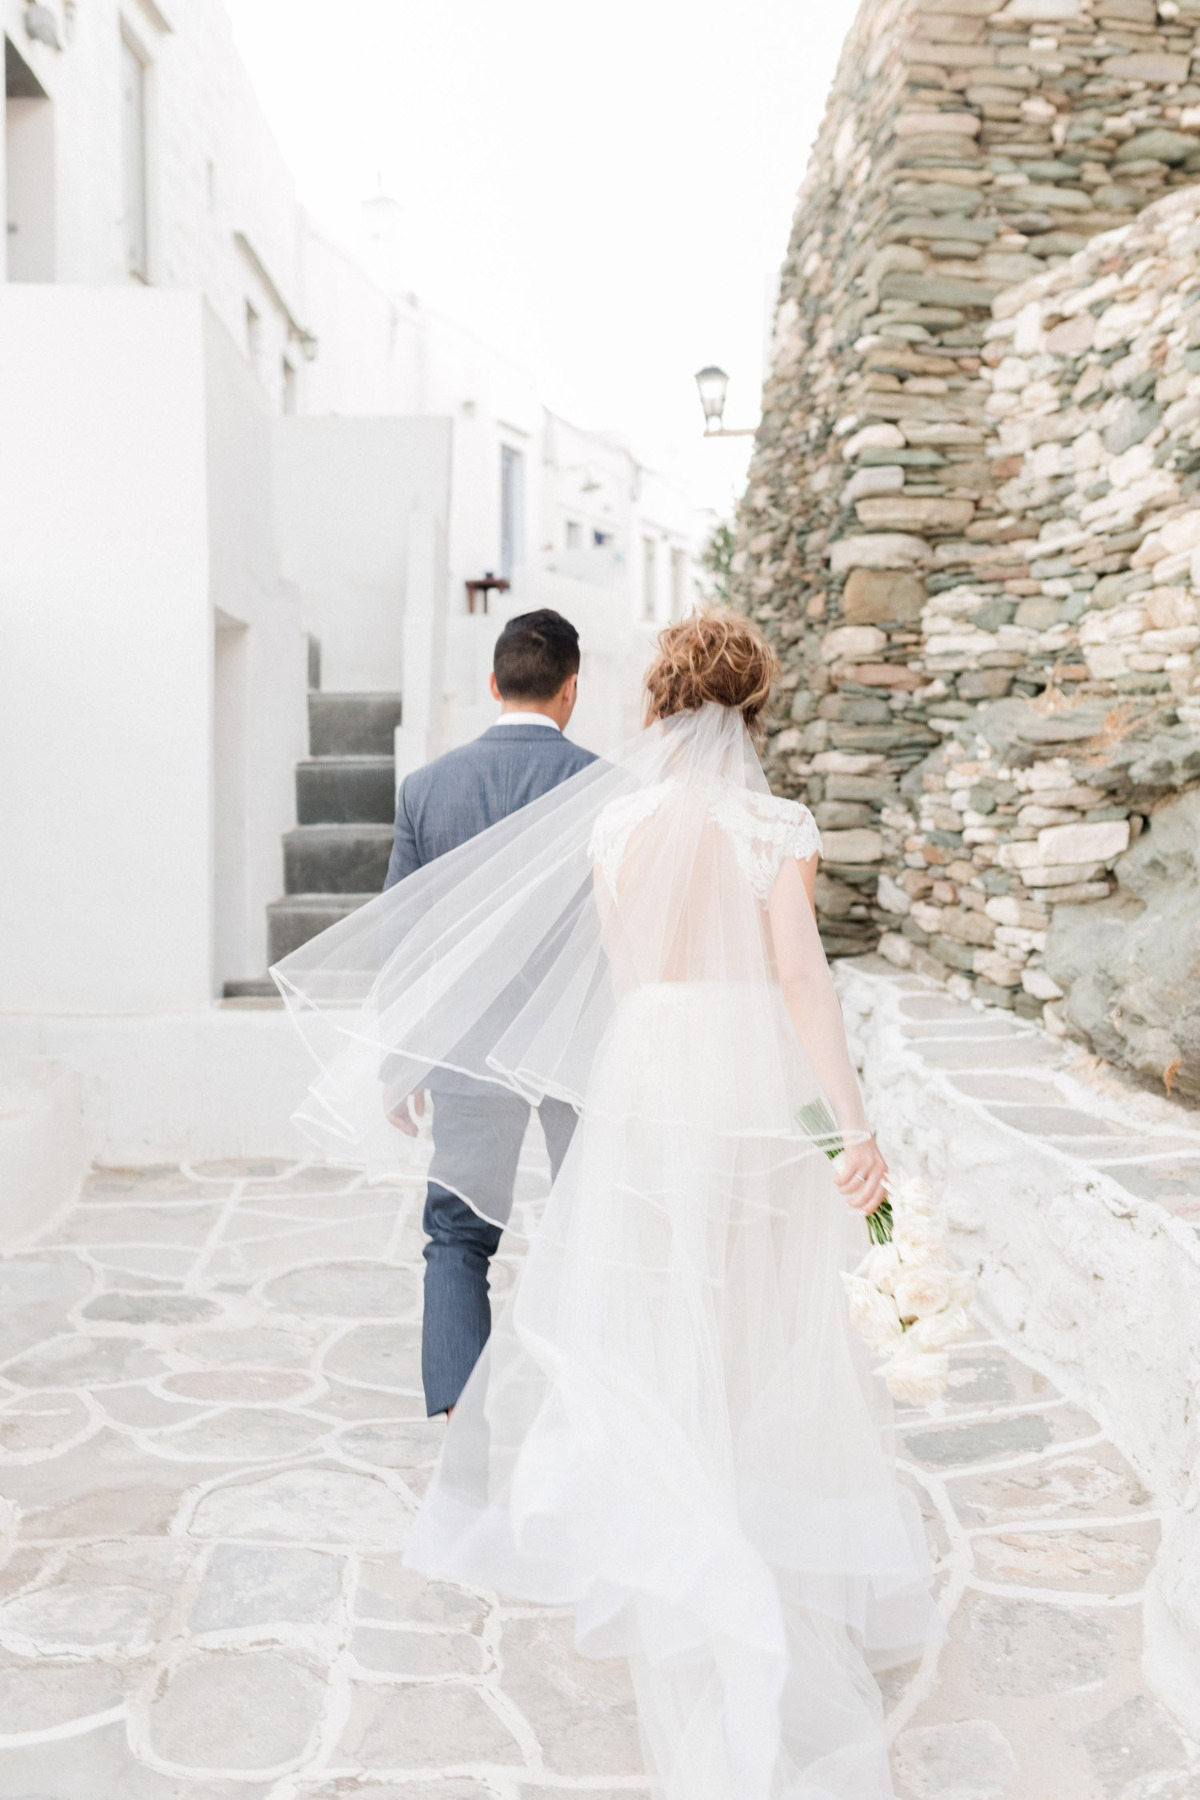 Greece wedding